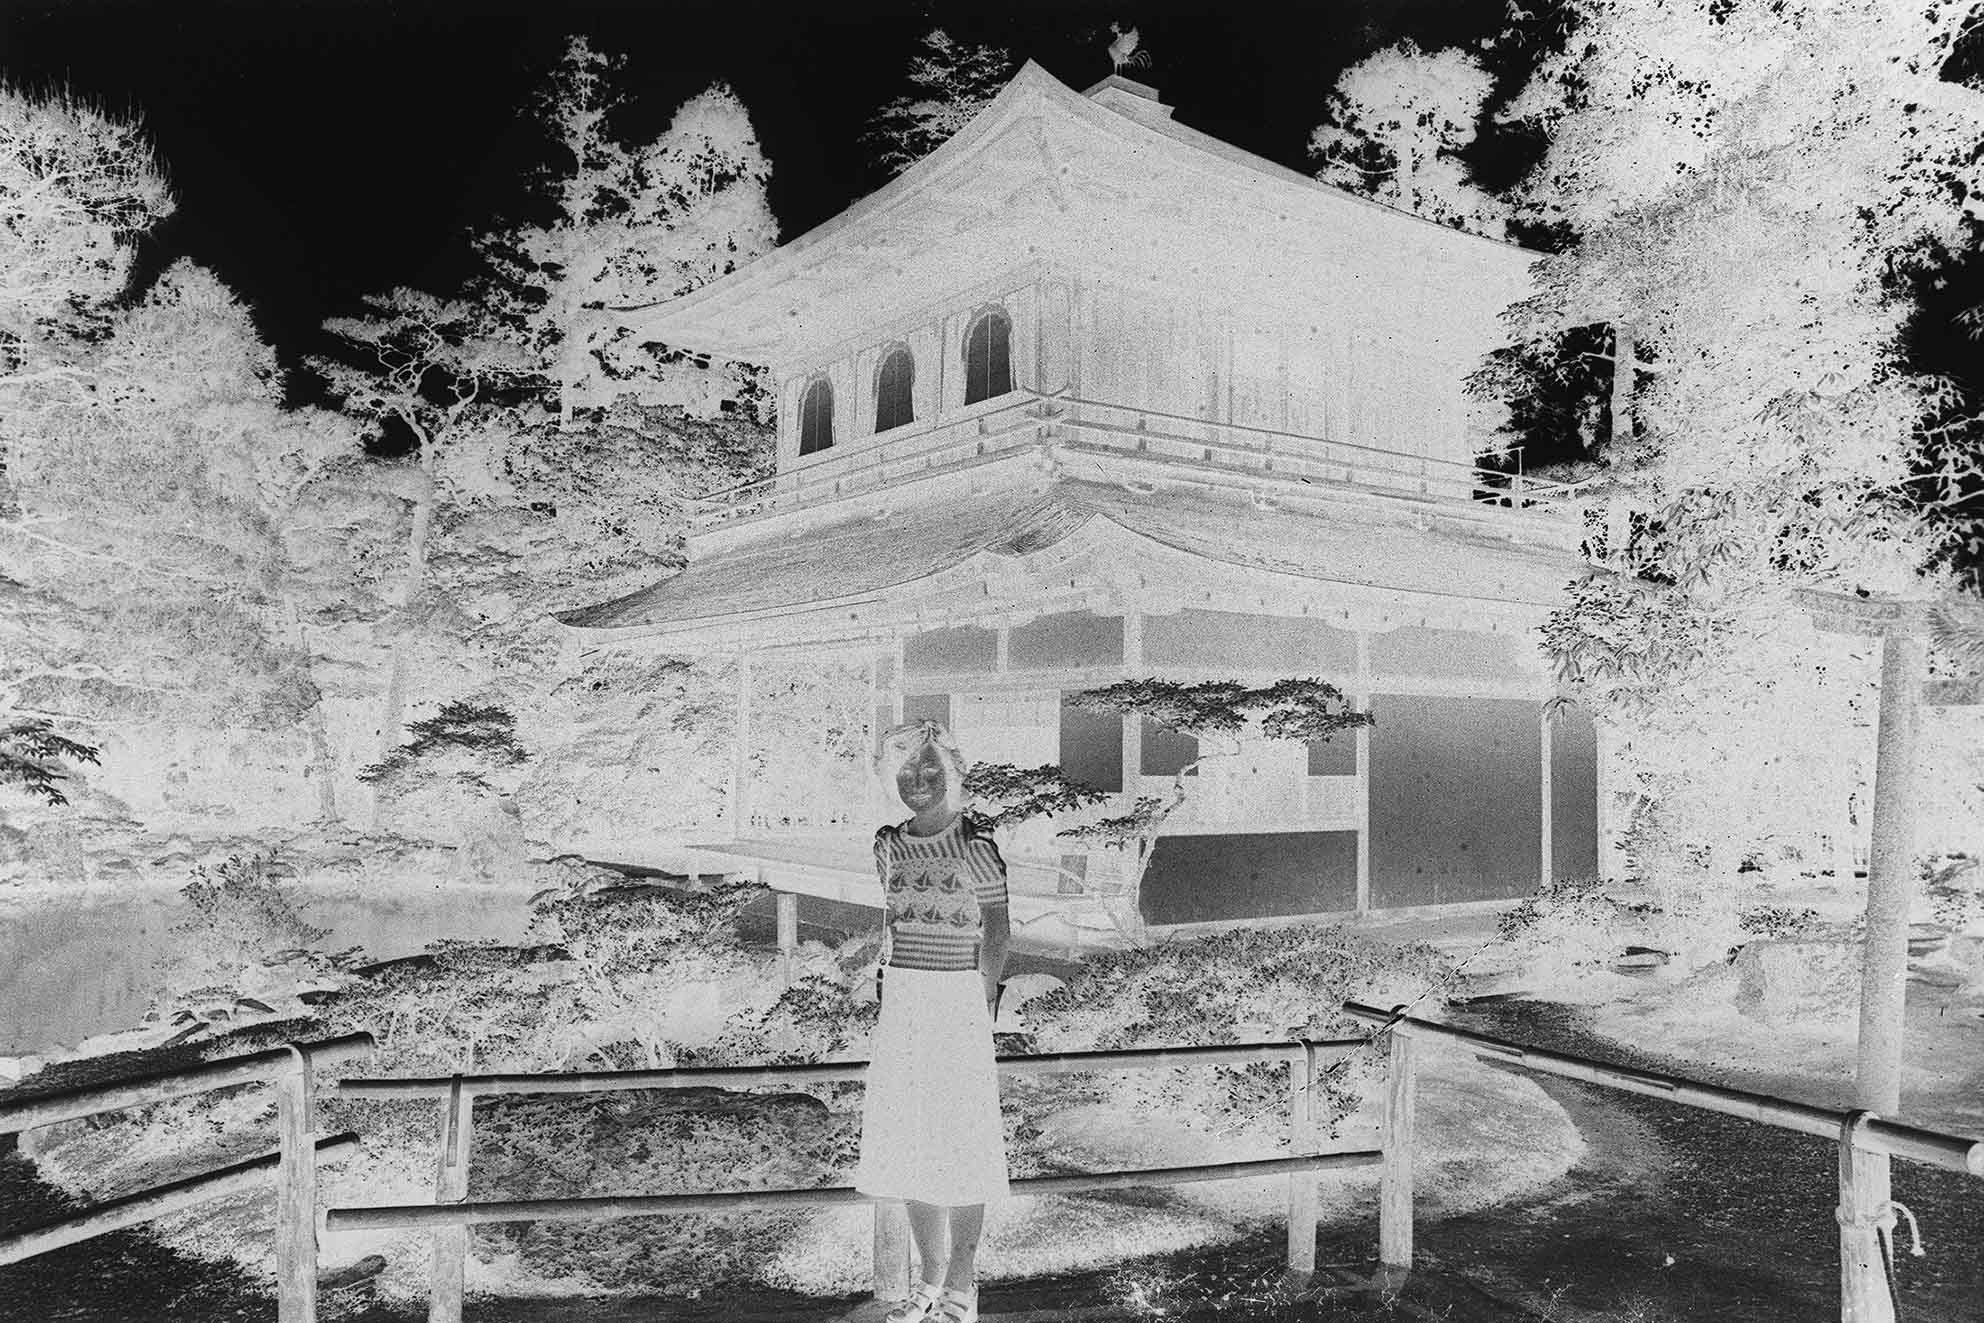 Sentimental Night in Kyoto_44 © Nobuyoshi Araki